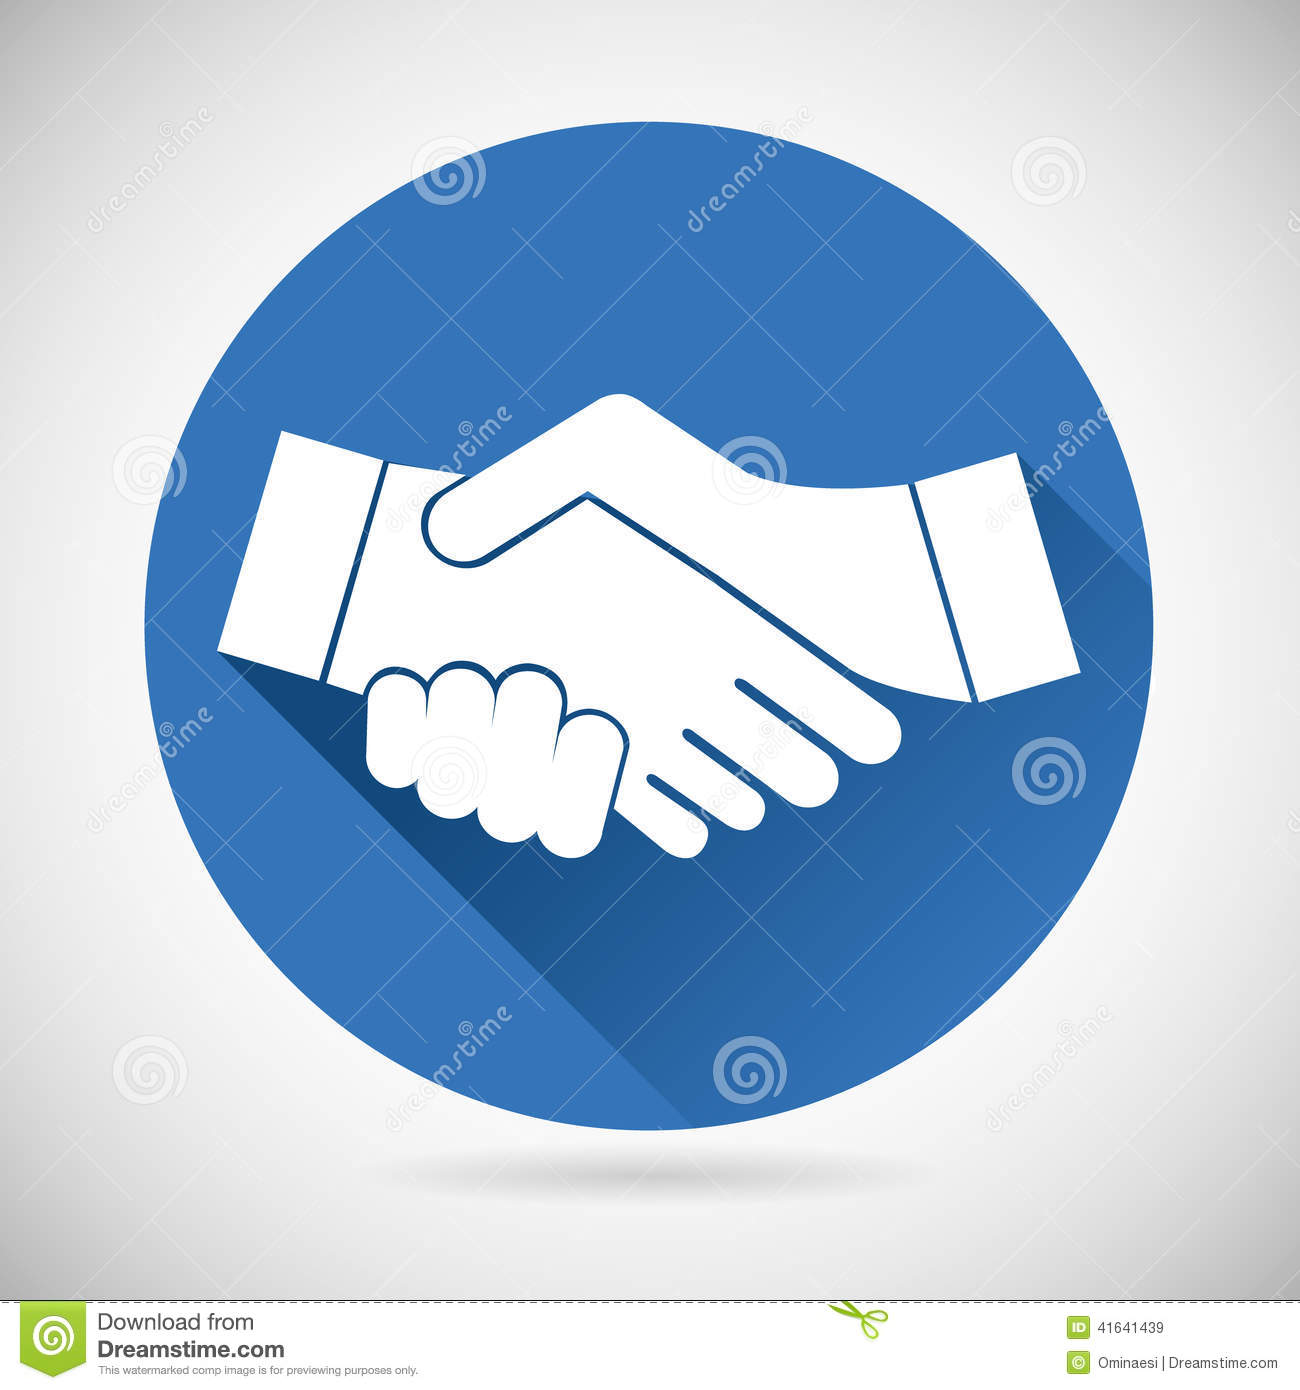 partnership agreement contract